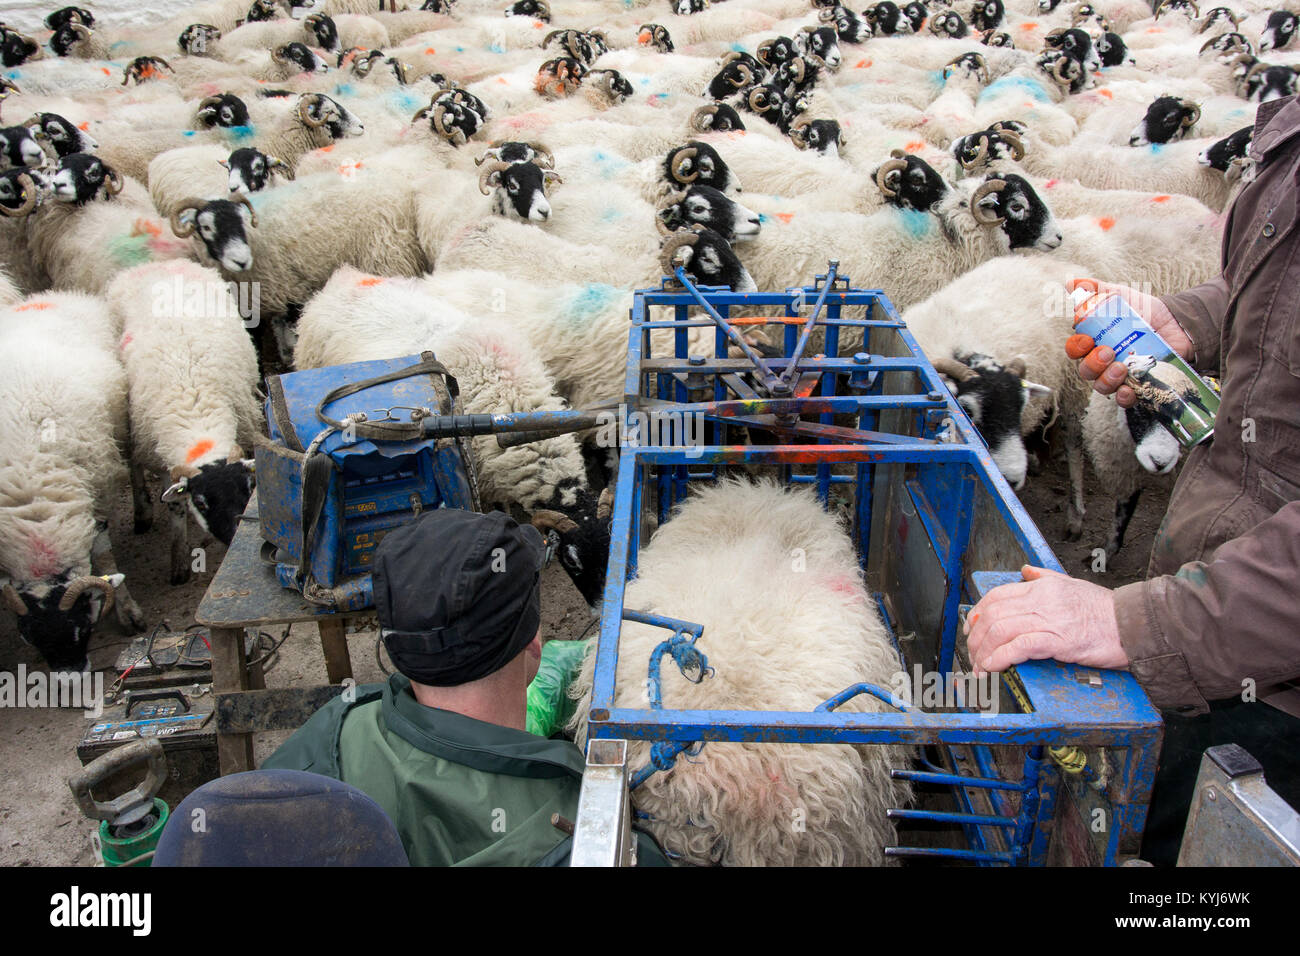 Scanning swaledale ewes with ultrasonic scanner to see how many lambs they have. Cumbria, UK. - Stock Image